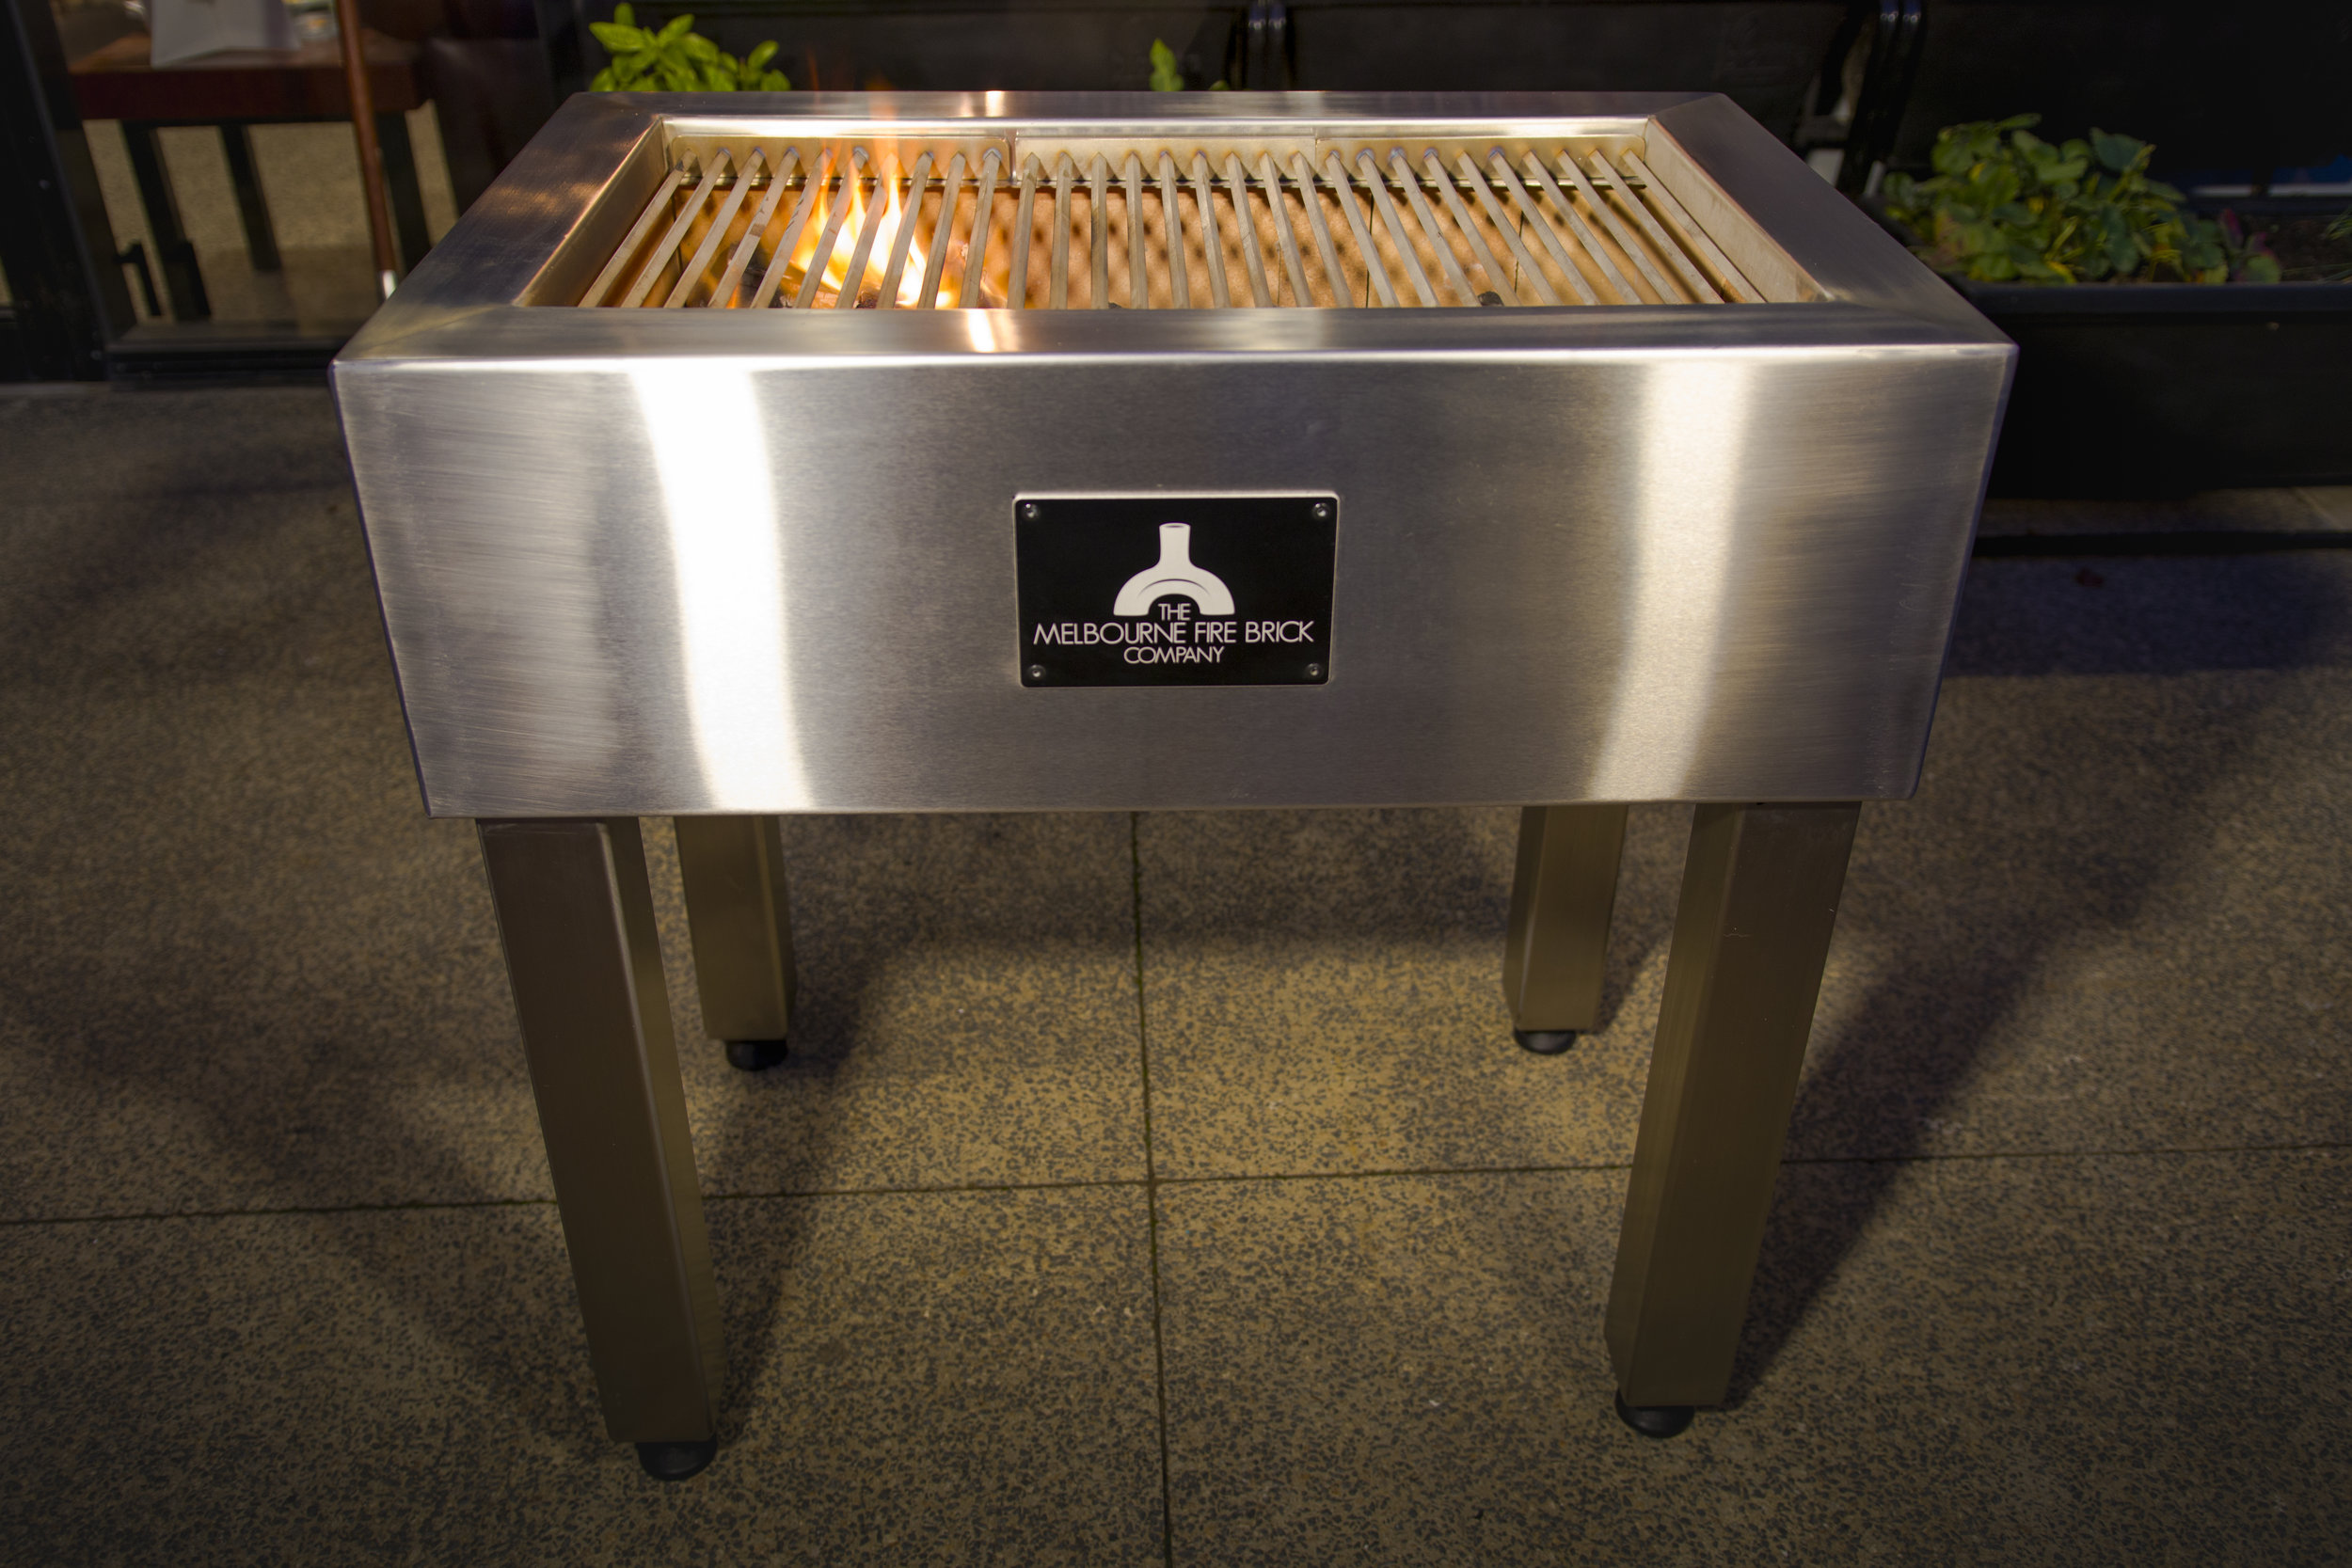 Charcoal Grills -